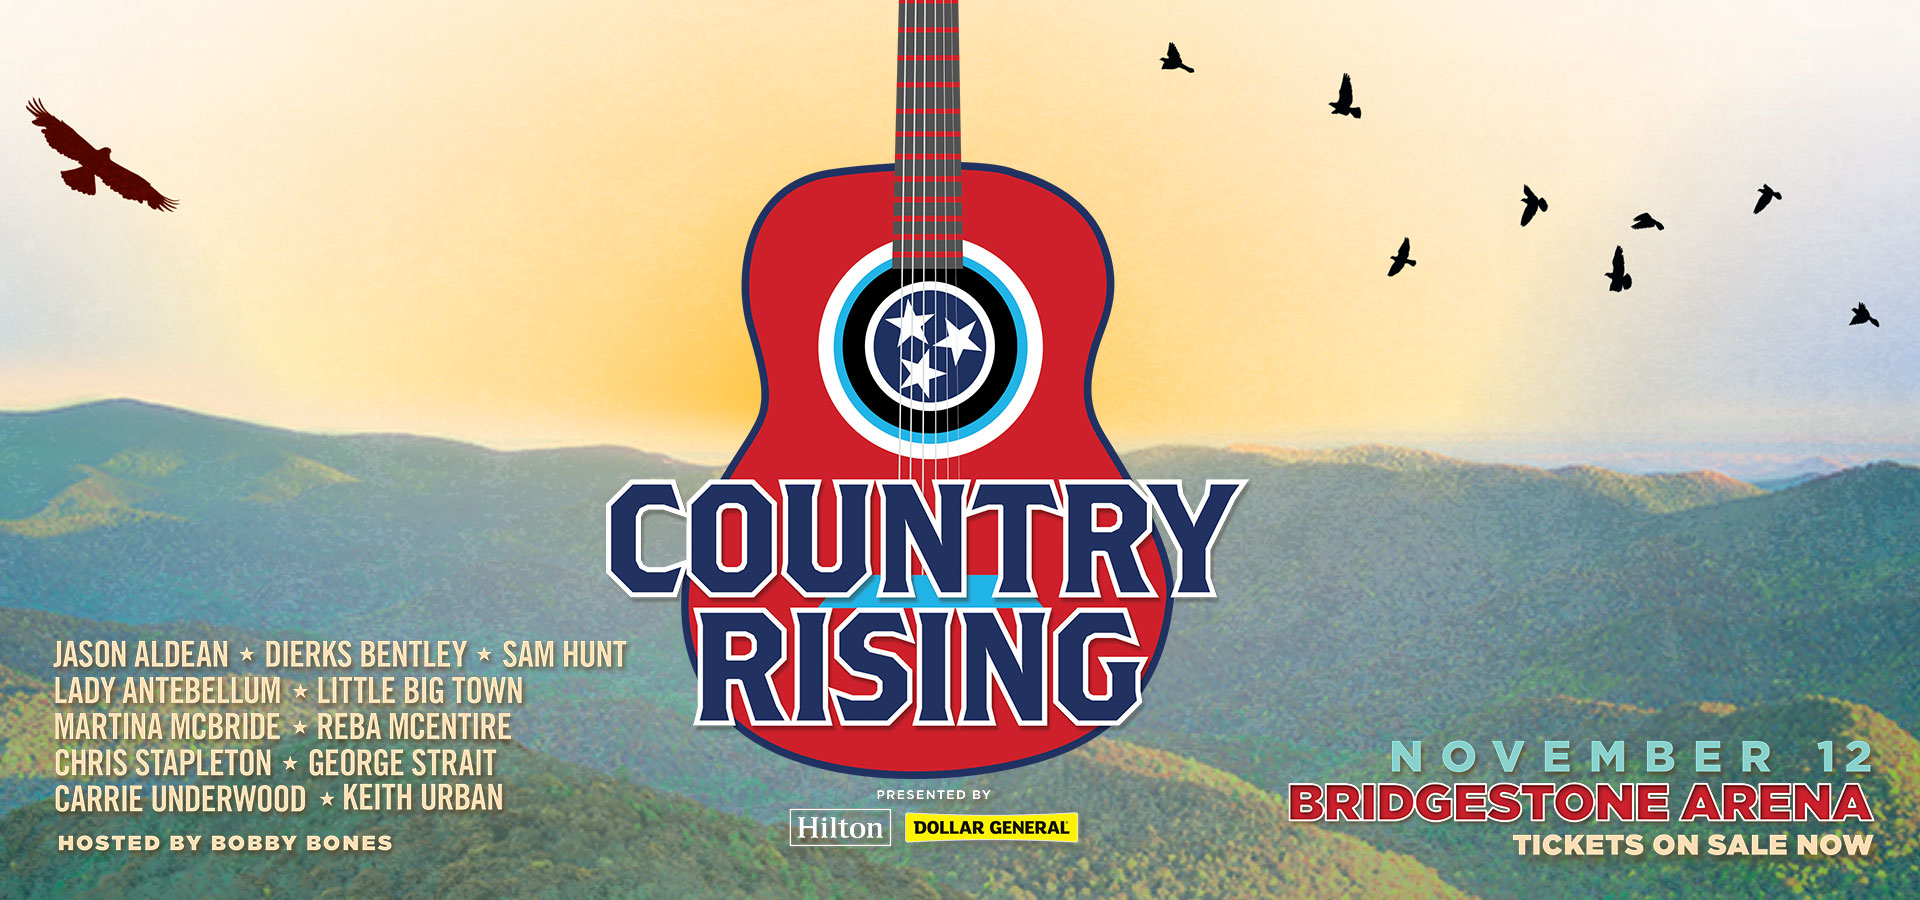 Country Rising